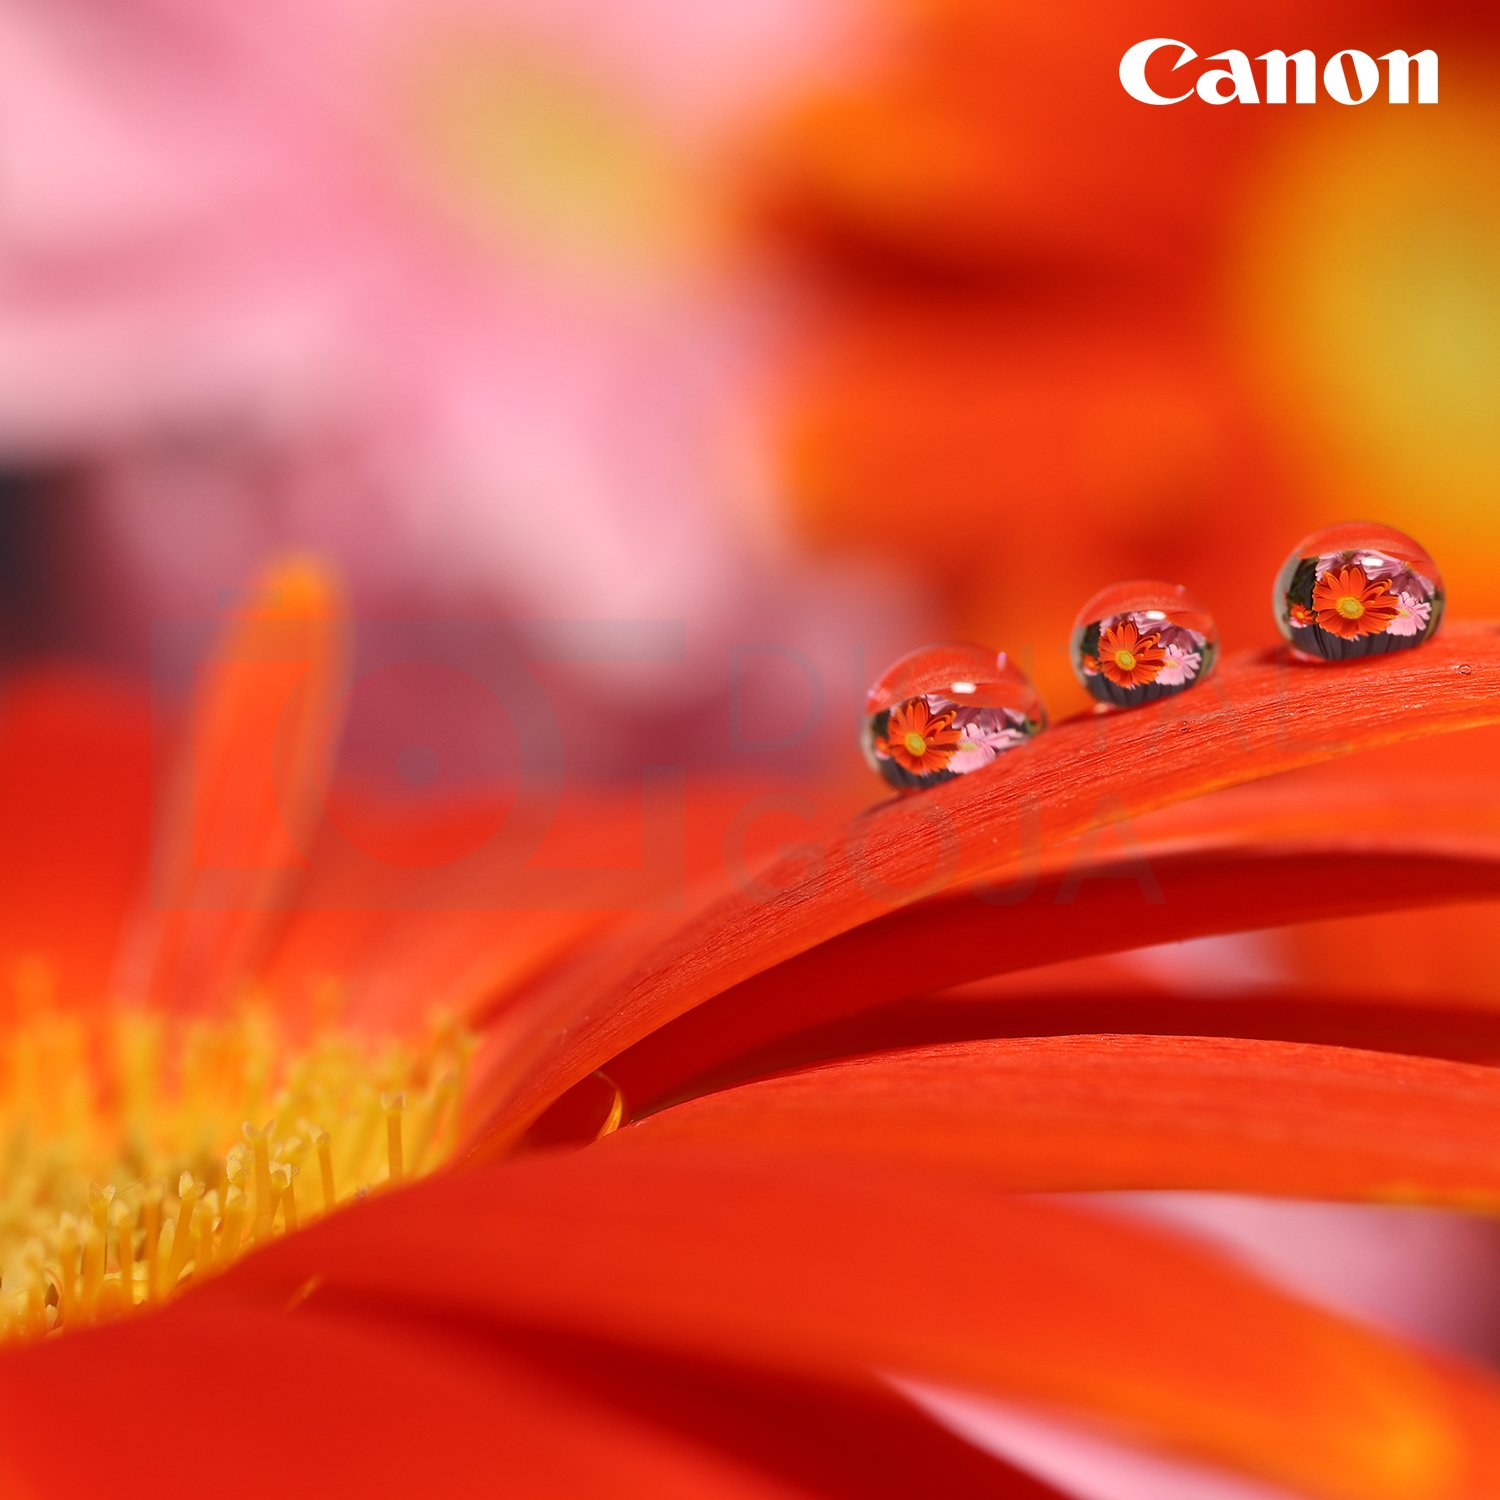 Canon EF-S 35mm f/2.8 Macro is STM Lens w/Essential Photo Bundle - Includes: Altura Photo UV-CPL-ND4, Camera Cleaning Set by Canon (Image #6)